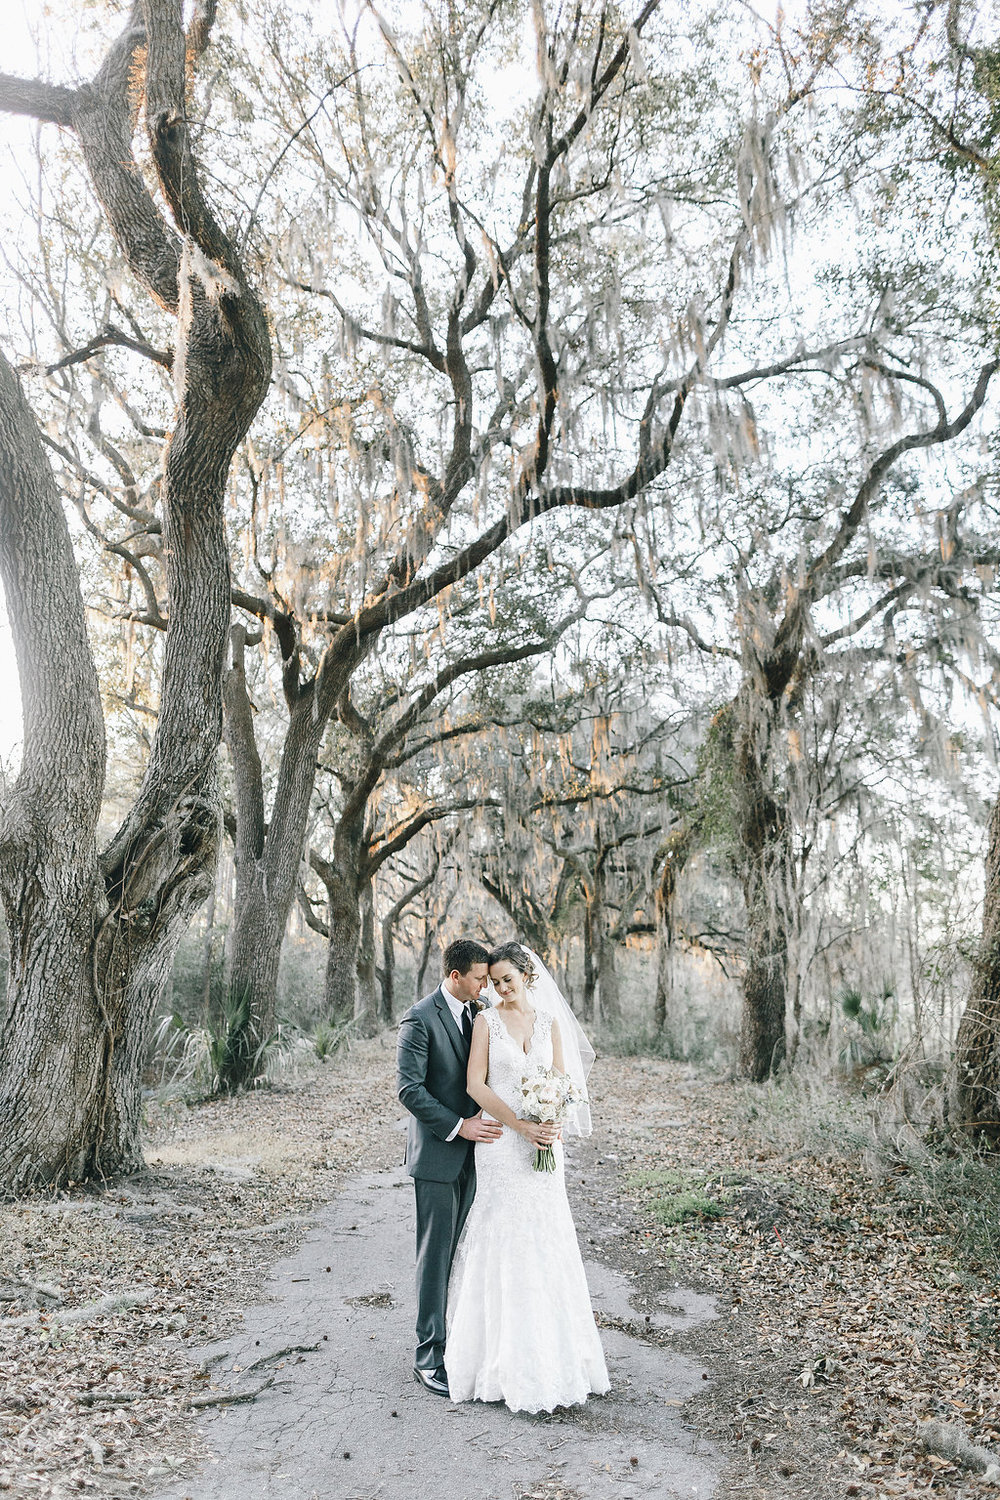 Katie + Ryan's Savannah, Georgia wedding by Mackensey Alexander